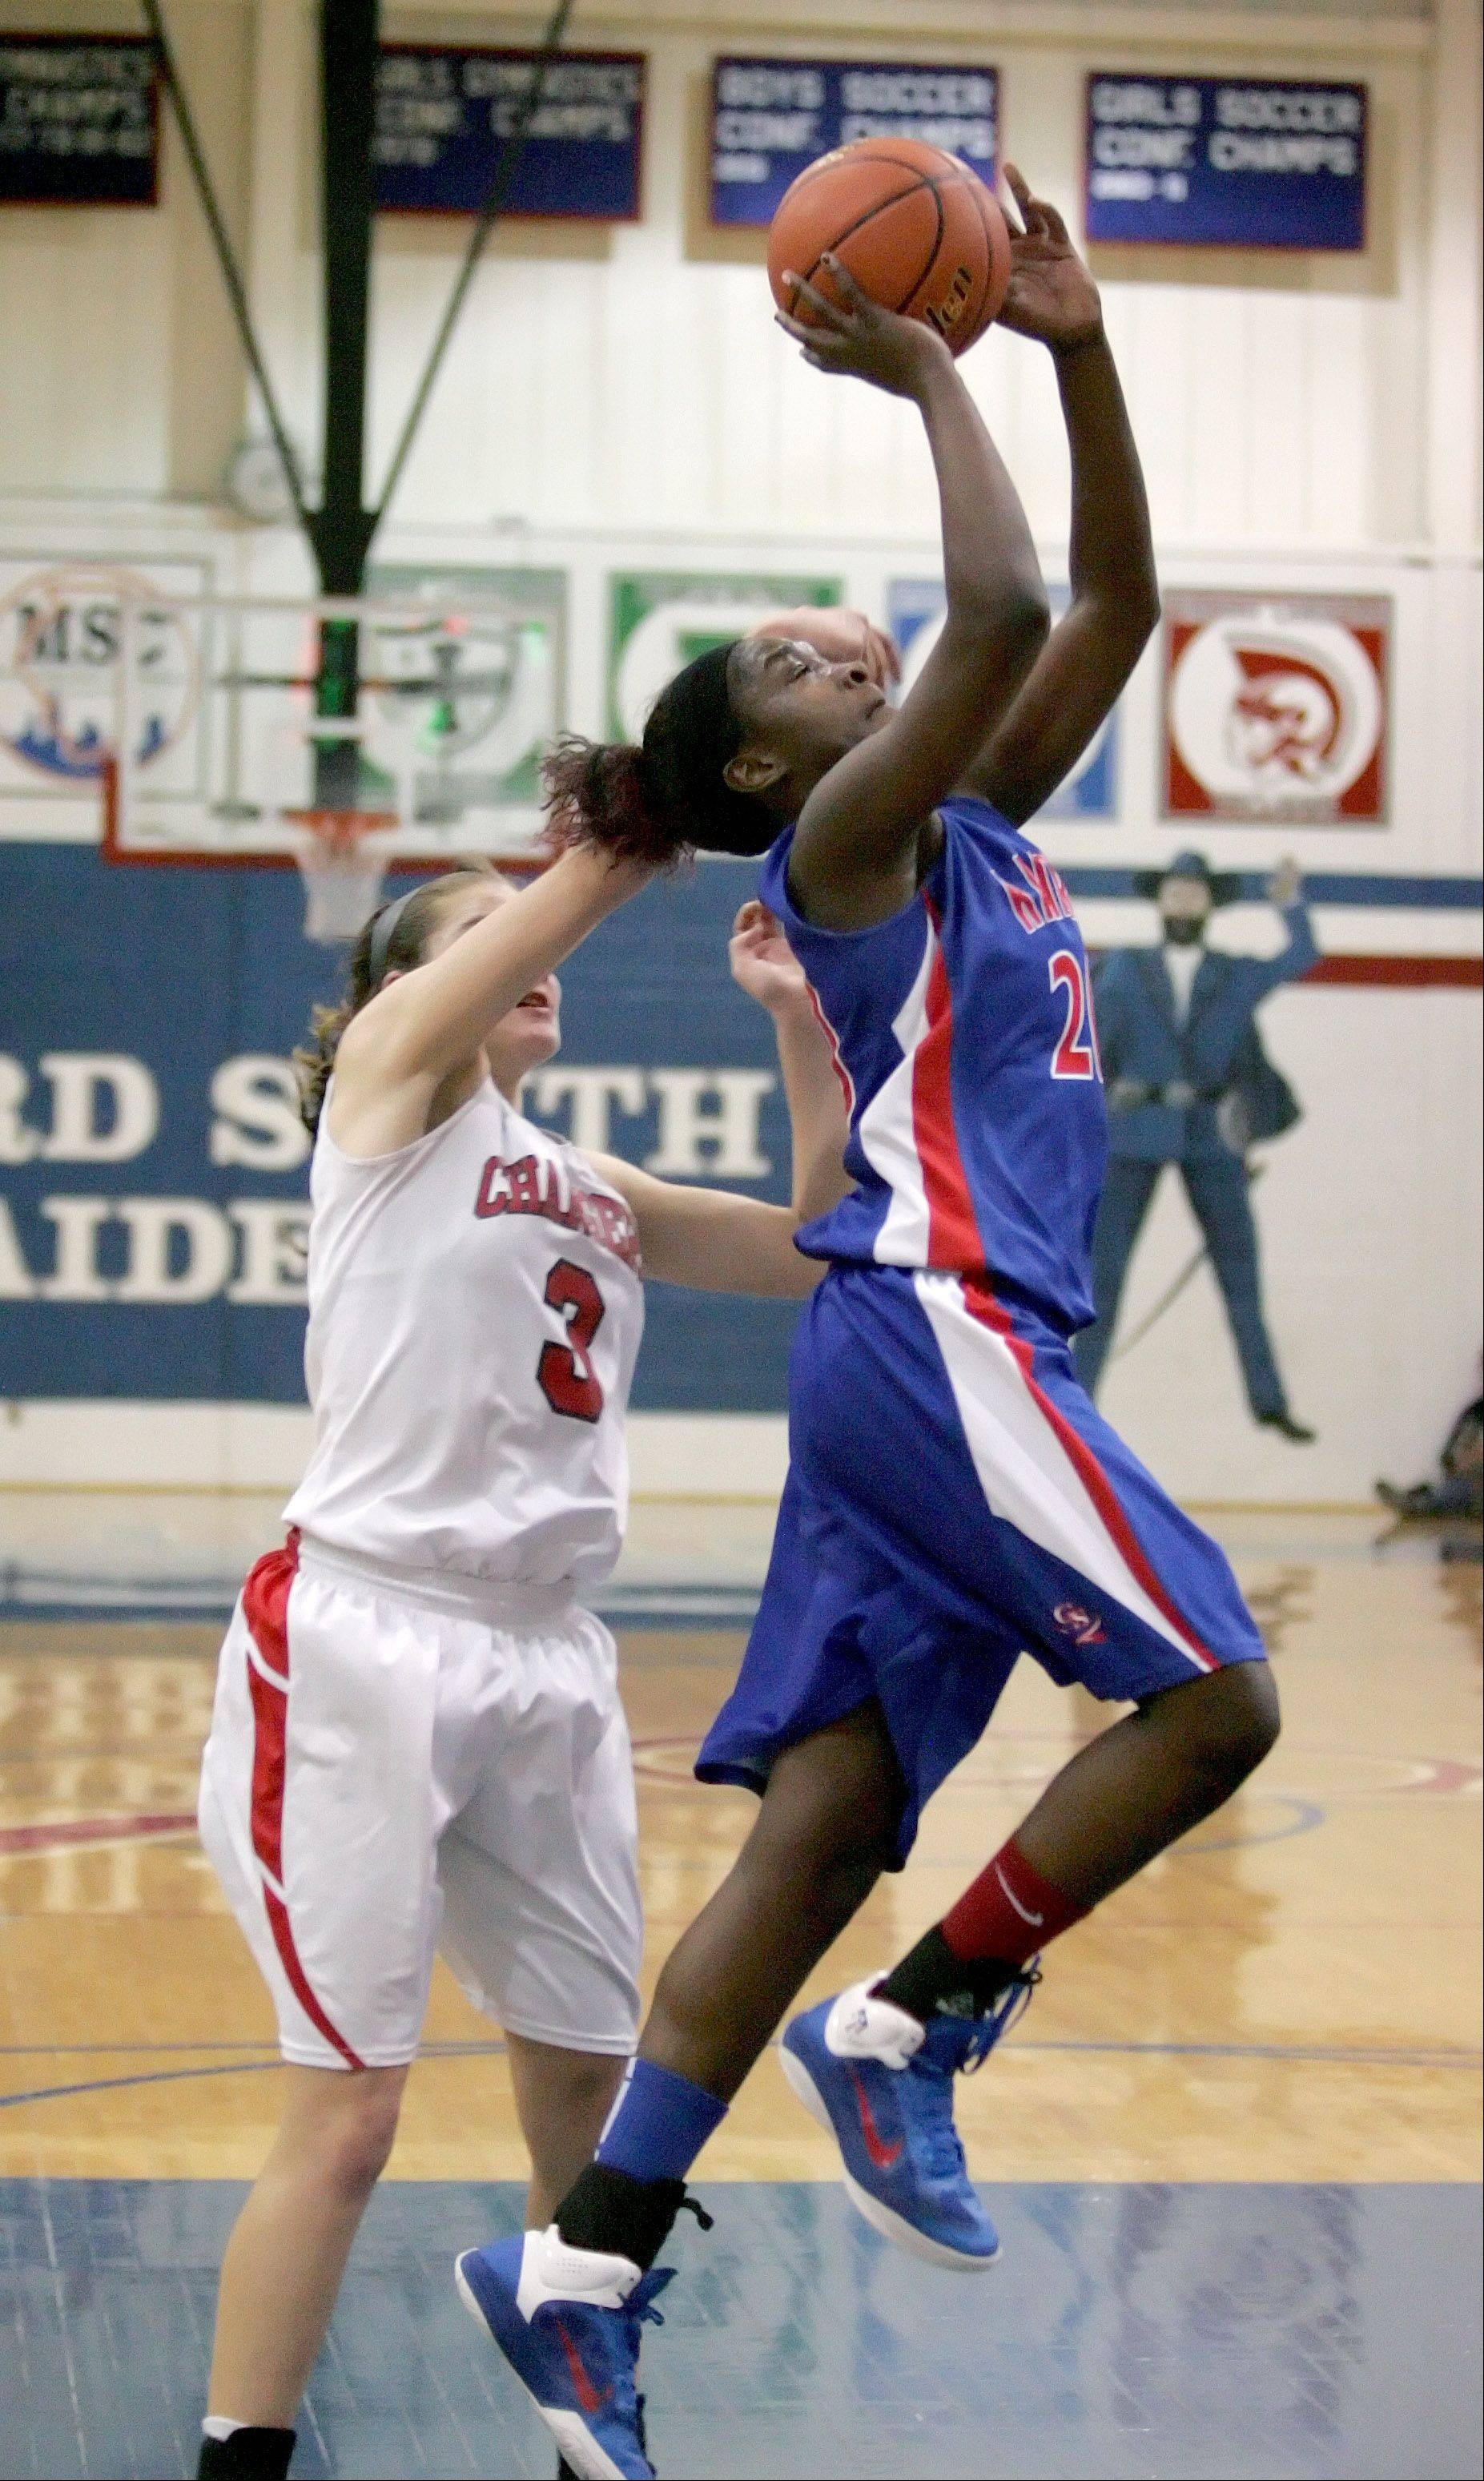 Patrice Hicks of Glenbard South shoots the ball against St. Joseph.